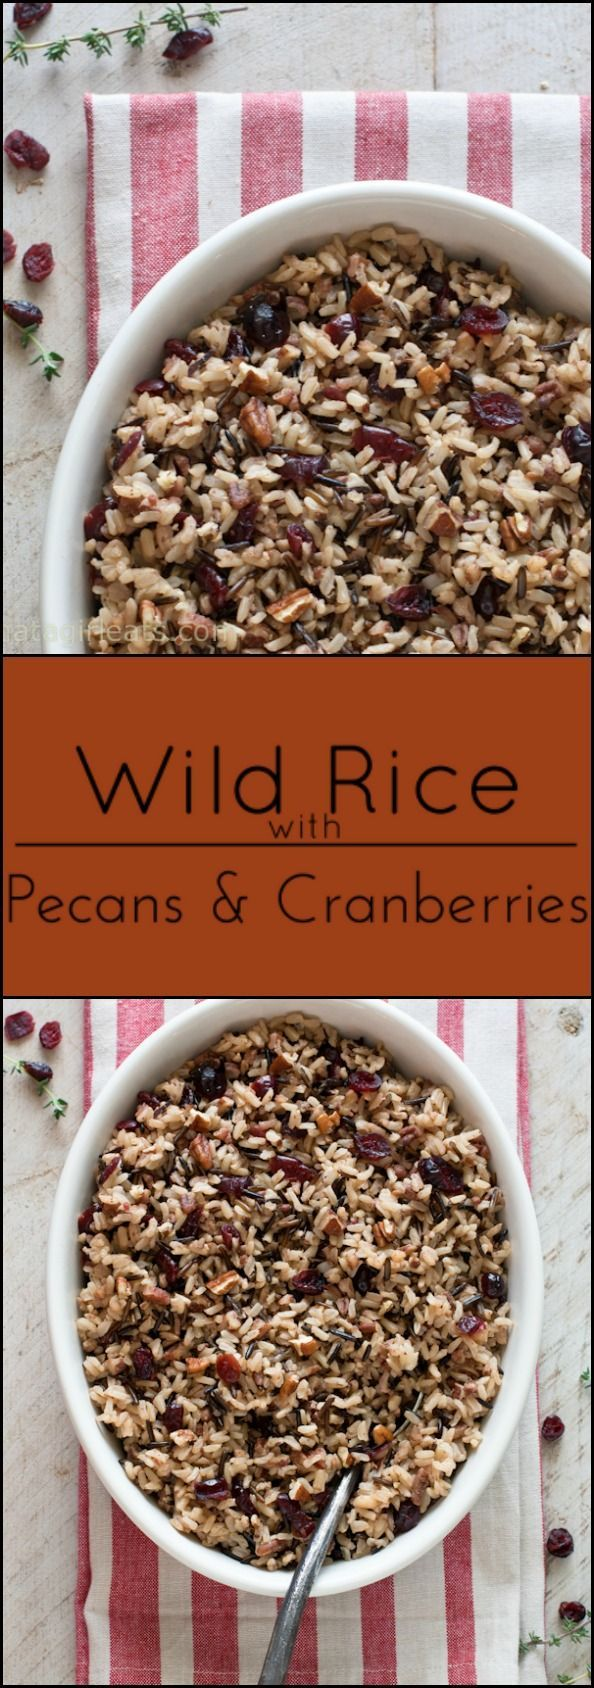 Cranberry Pecan Wild Rice makes a nice gluten-free alternative to stuffing. I make this Cranberry Pecan Wild Rice when I want something a little bit fancier than basic Rice Pilaf or Roasted Potatoes. It pairs perfectly with Slow-cooker Cornish Game Hens with Grand Marnier Sauce. But it also just feels like the perfect American side dish, with crunchy toasted pecans...Read More »